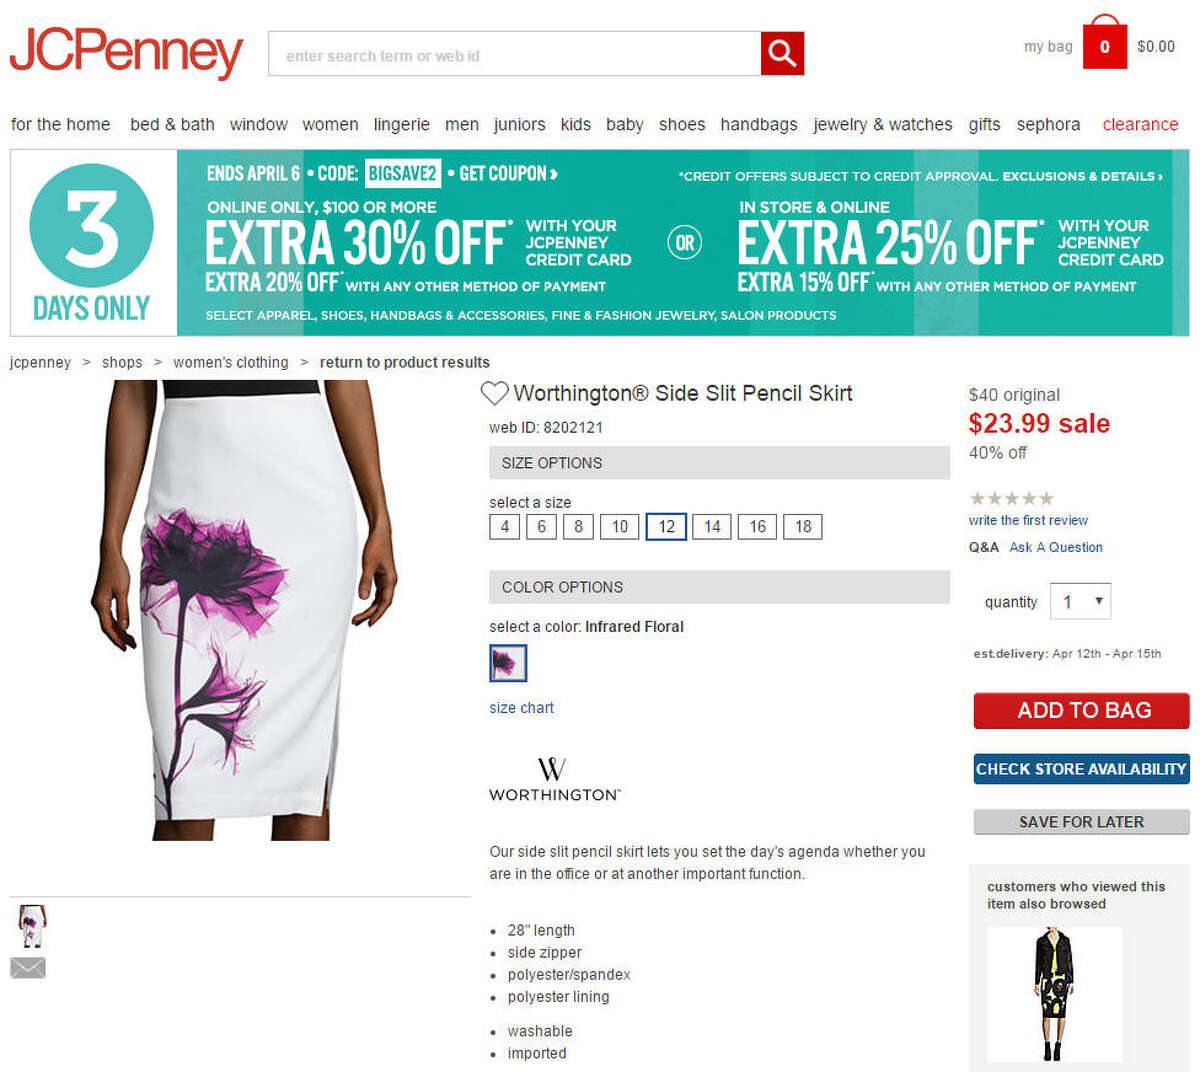 JCPenney still features the skirt on its website, regardless of Internet backlash. Continue clicking to see recent beauty trends that have us scratching our heads.